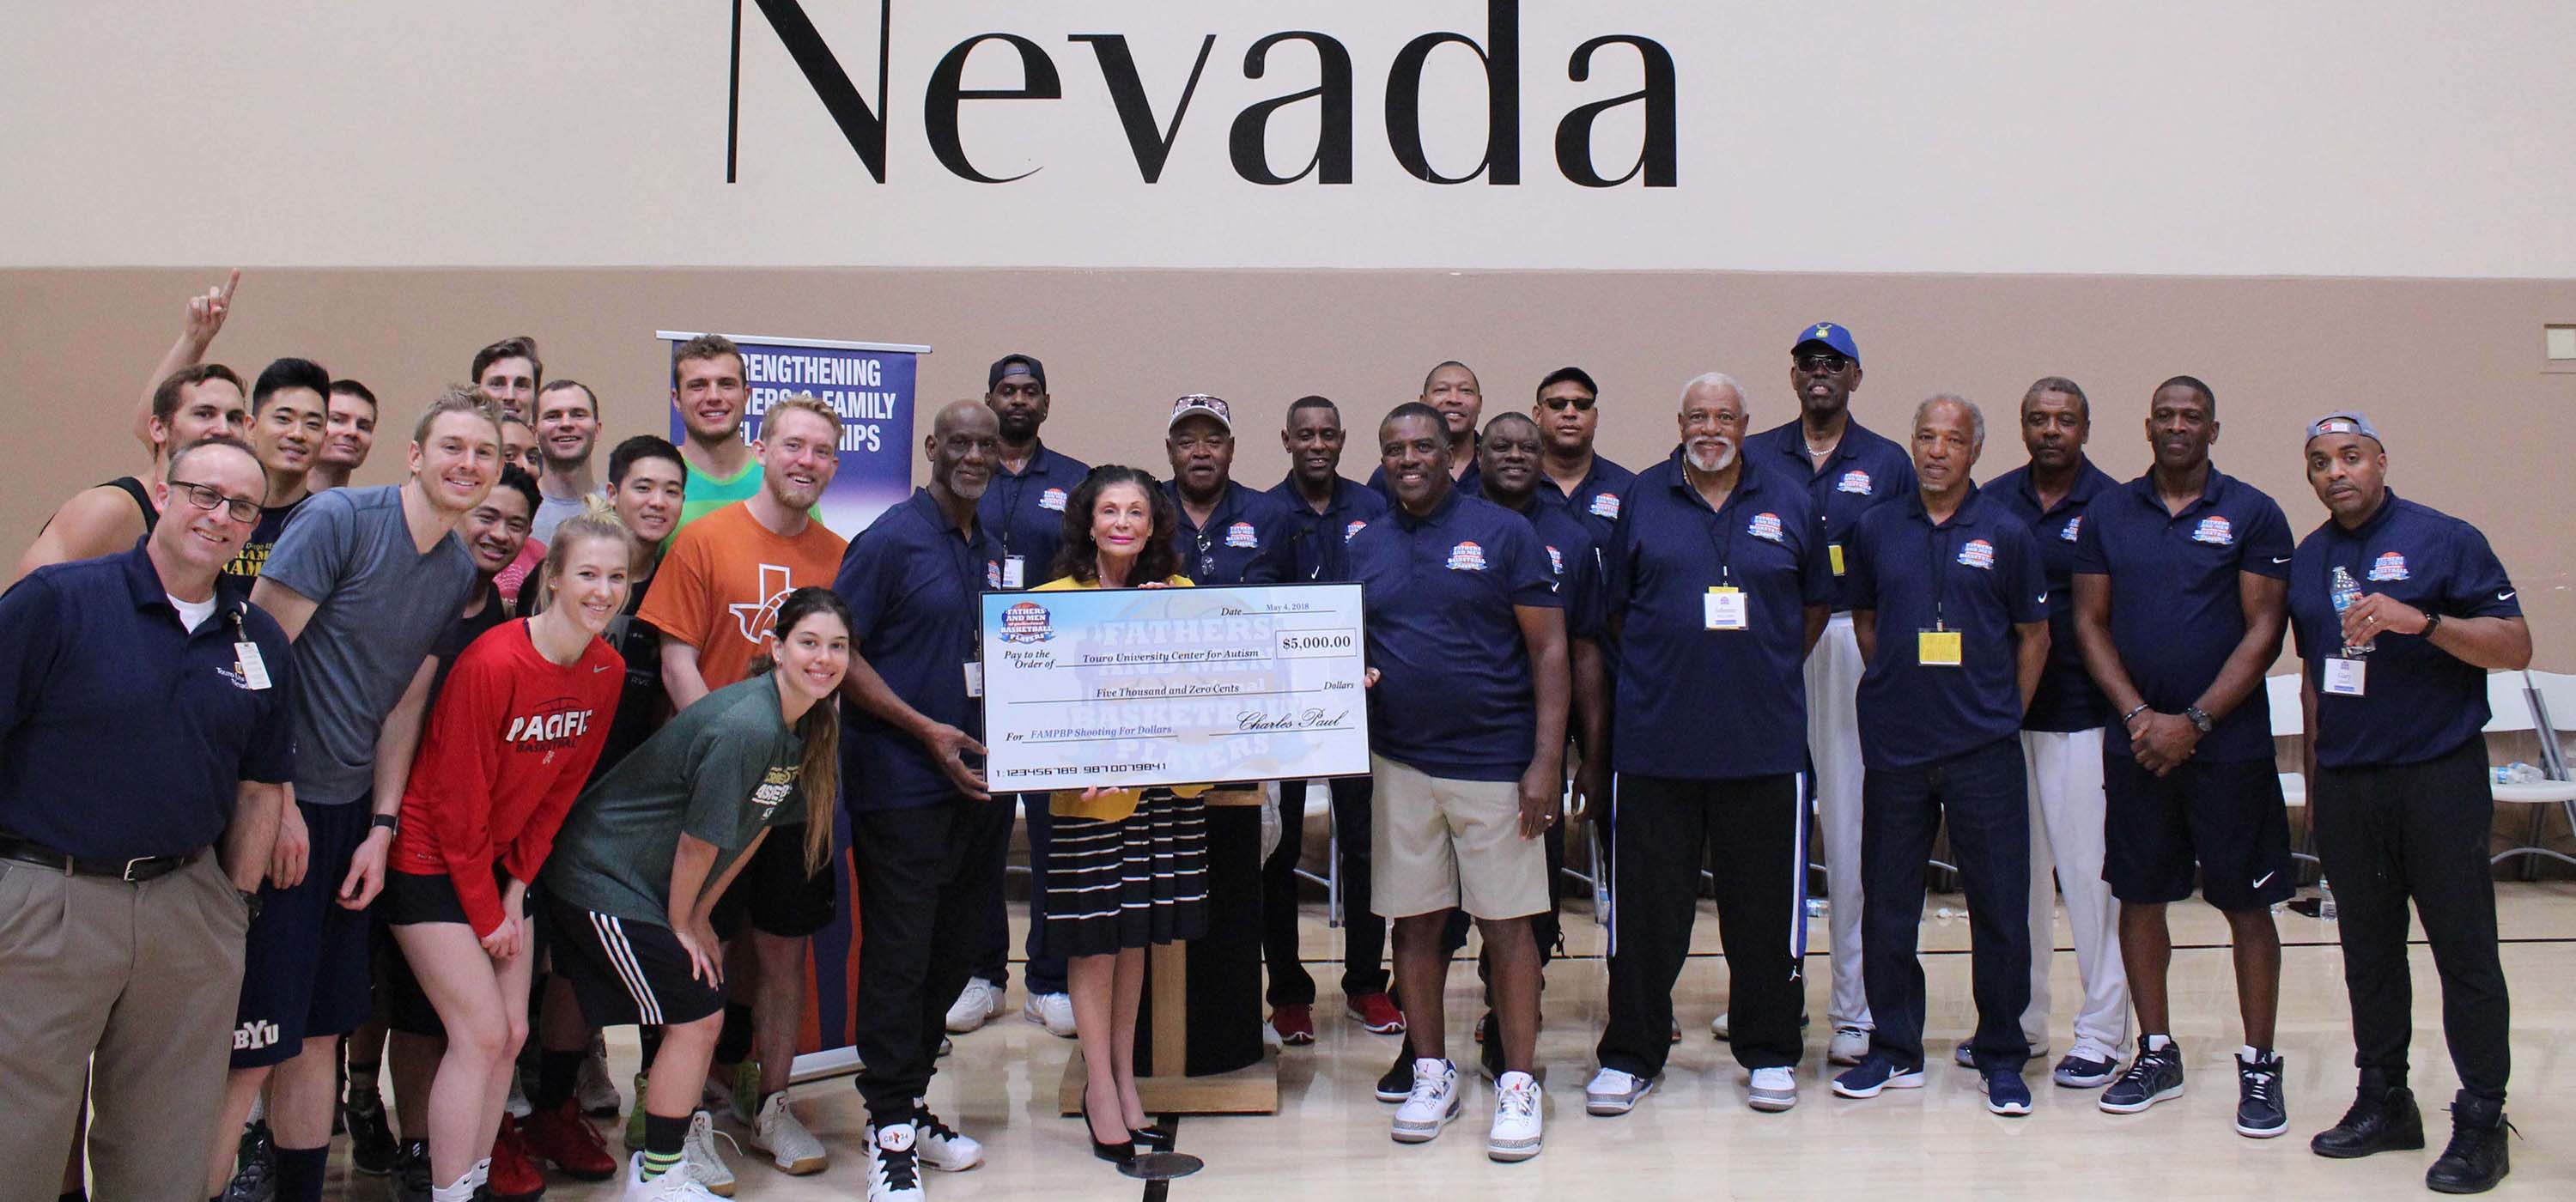 The fathers of NBA greats on the basketball court with the Touro Nevada team.